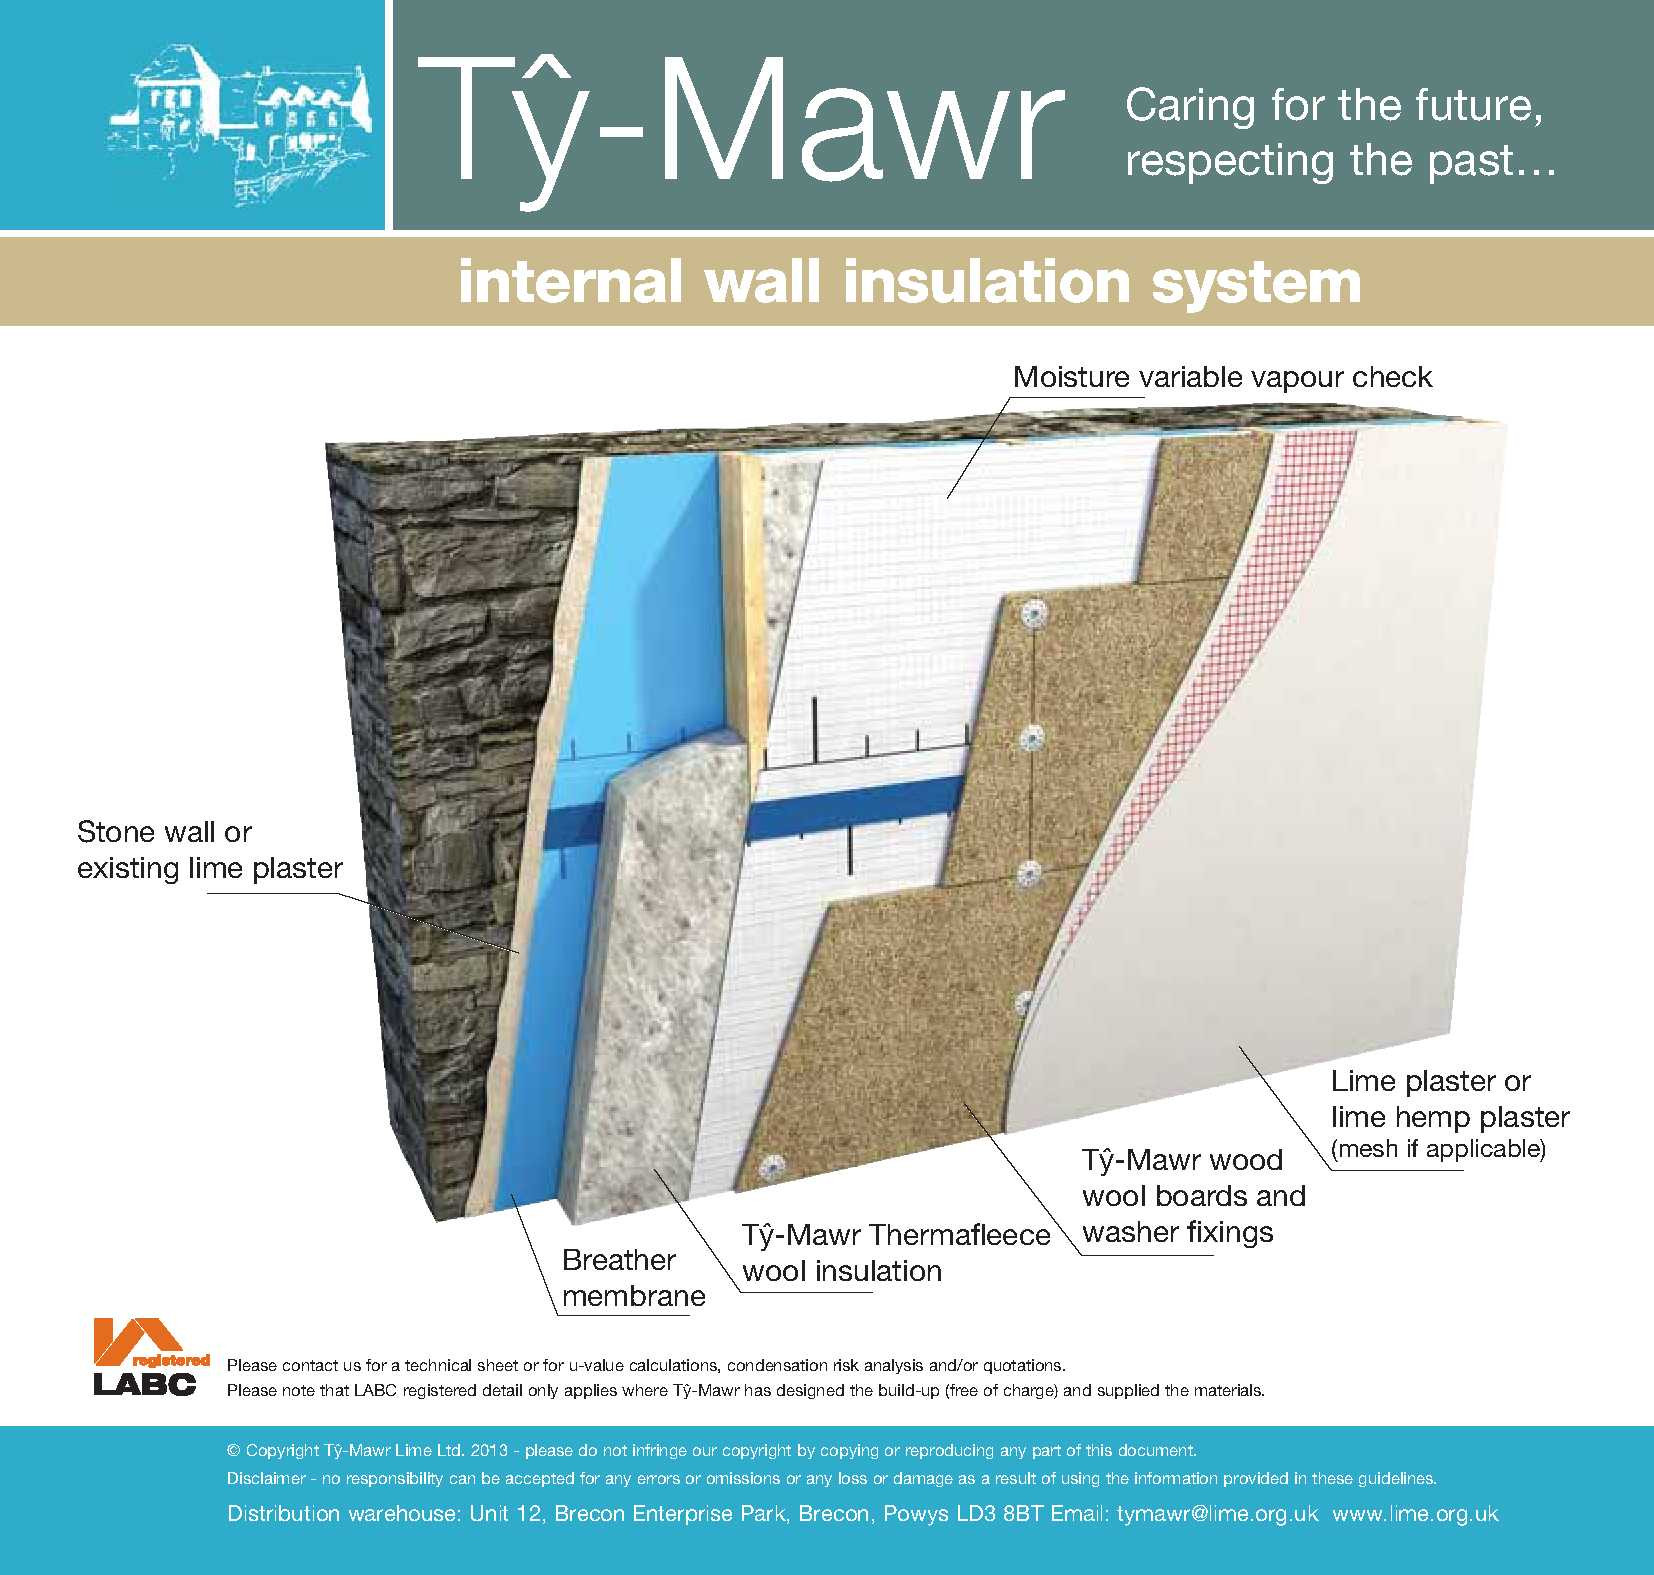 IWI - Wood Wool and Natural Insulation